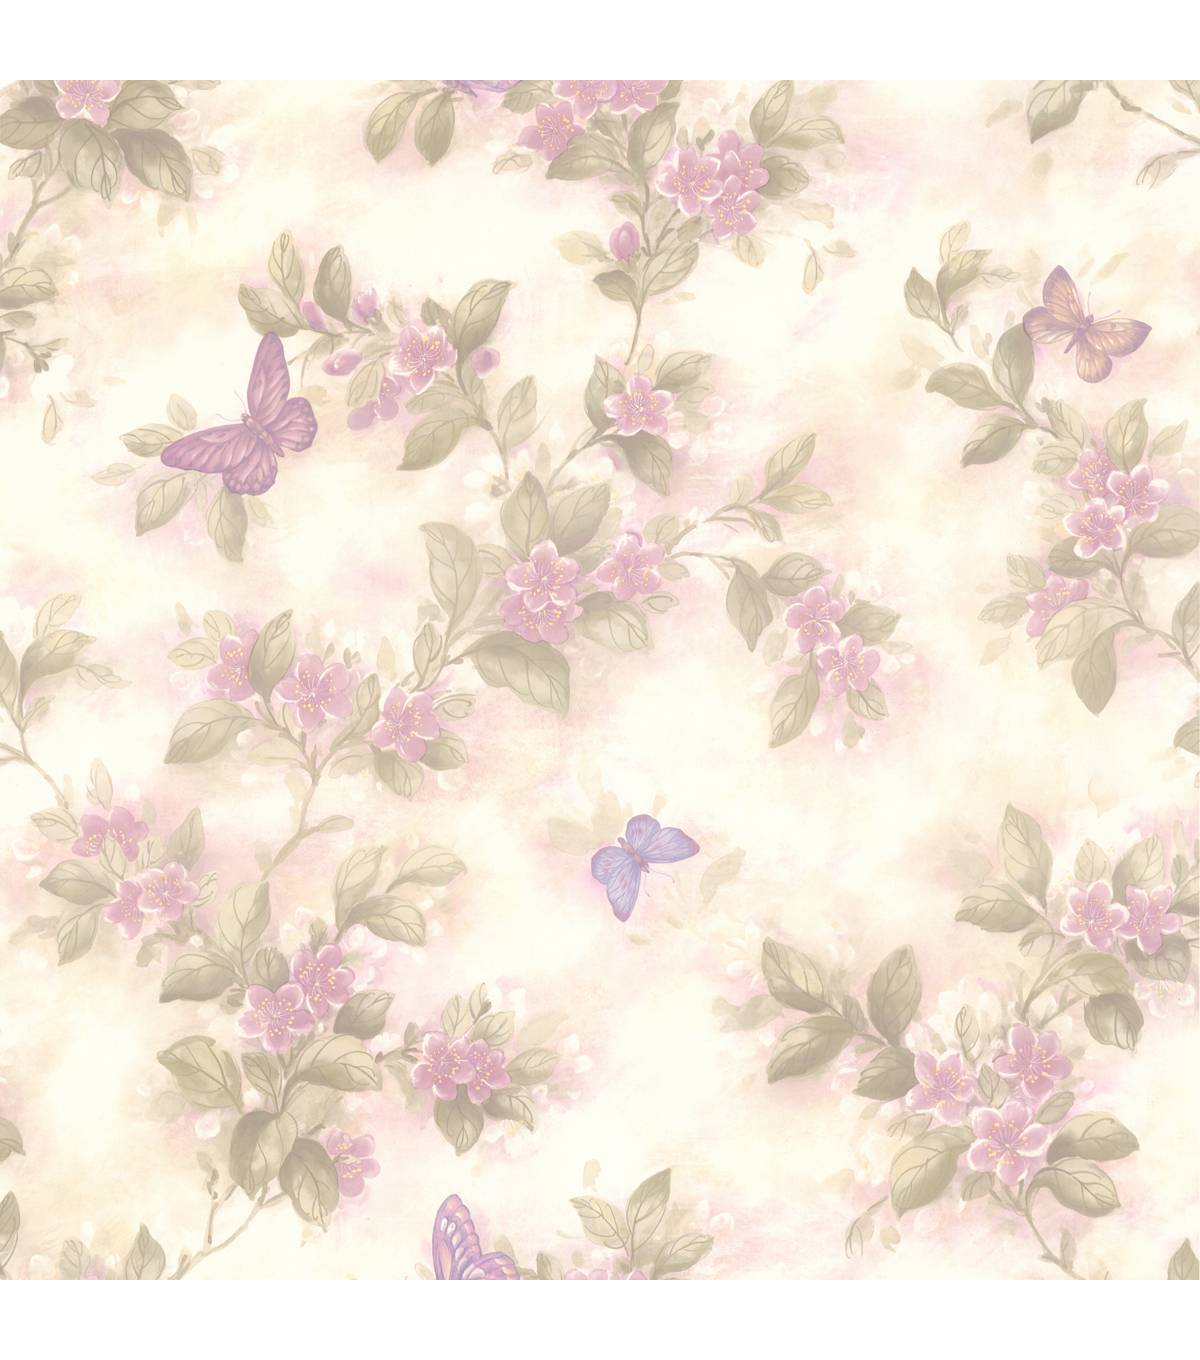 Mariposa Lavender Blossom/Butterfly  Wallpaper Sample